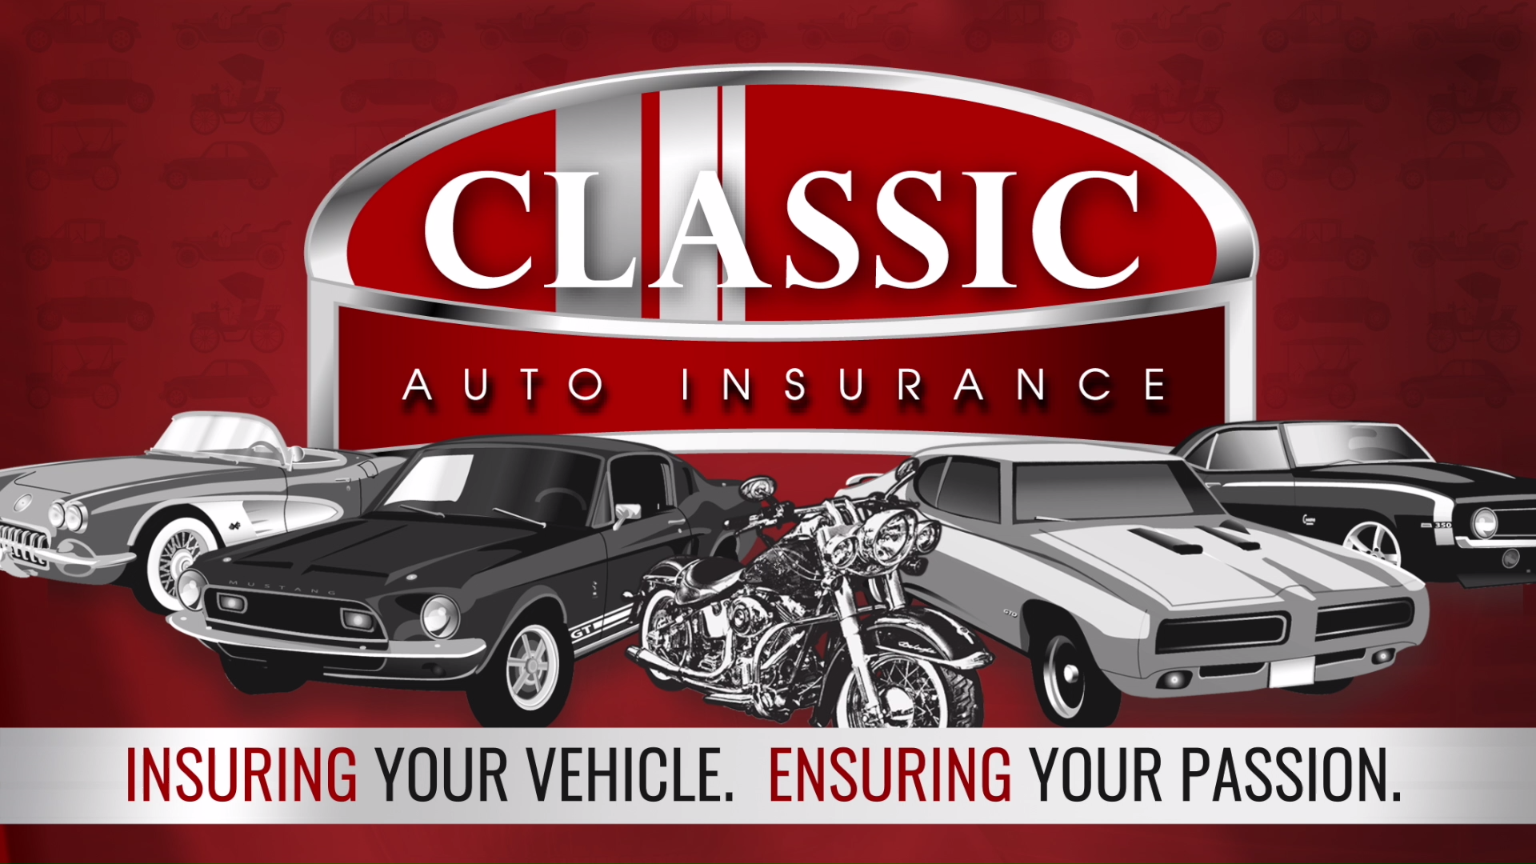 Classic Auto has affordable rates, agreed value coverage, and ...